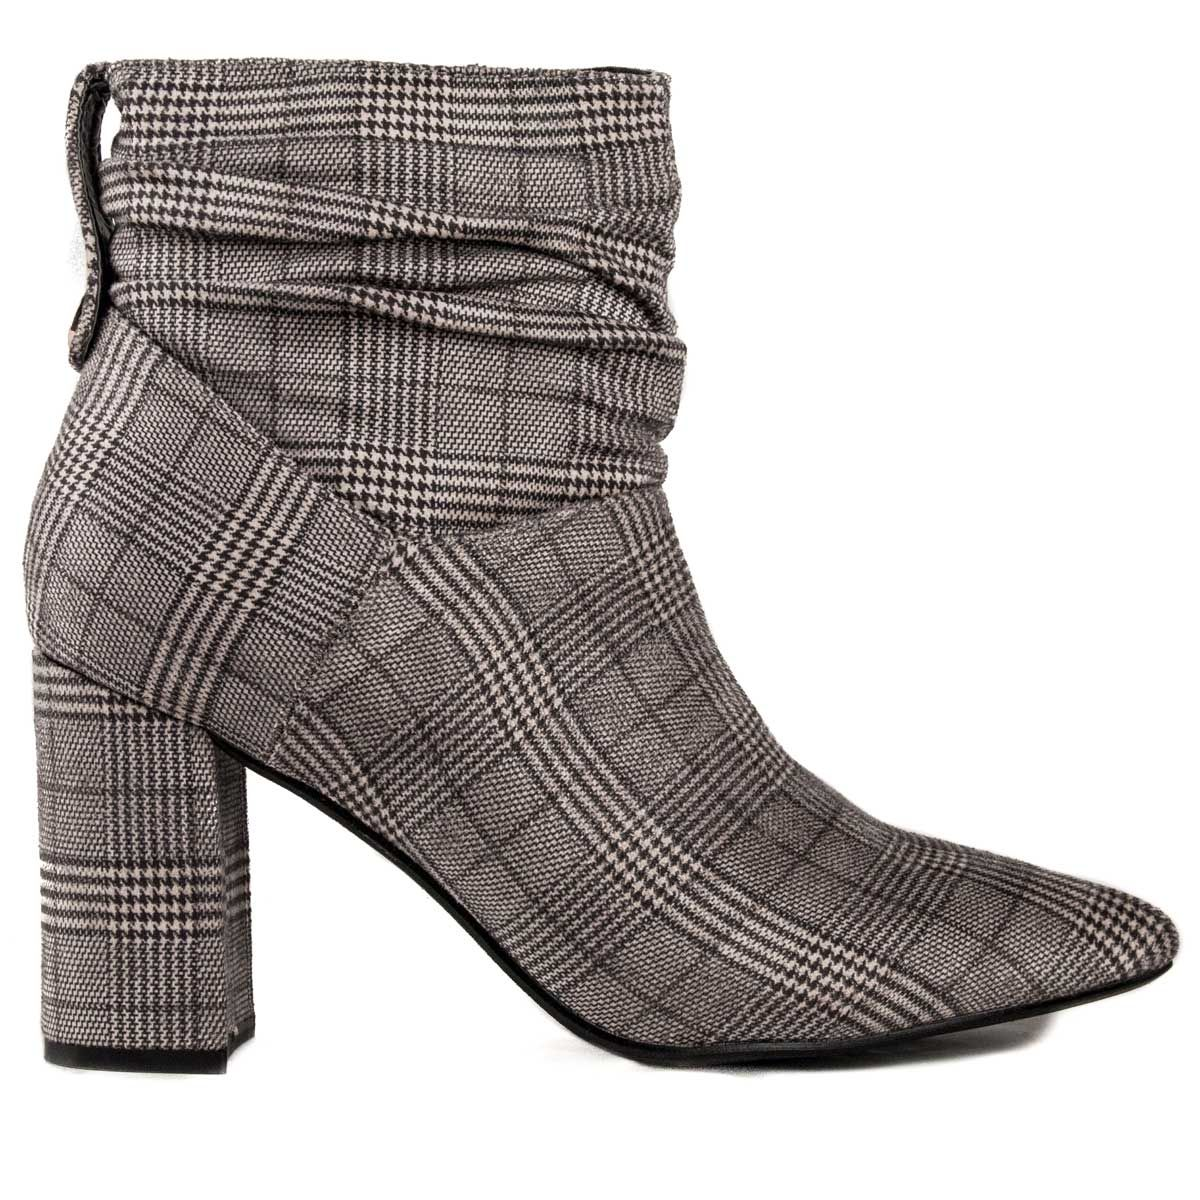 Montevita Heeled Ankle Boot in Check Print